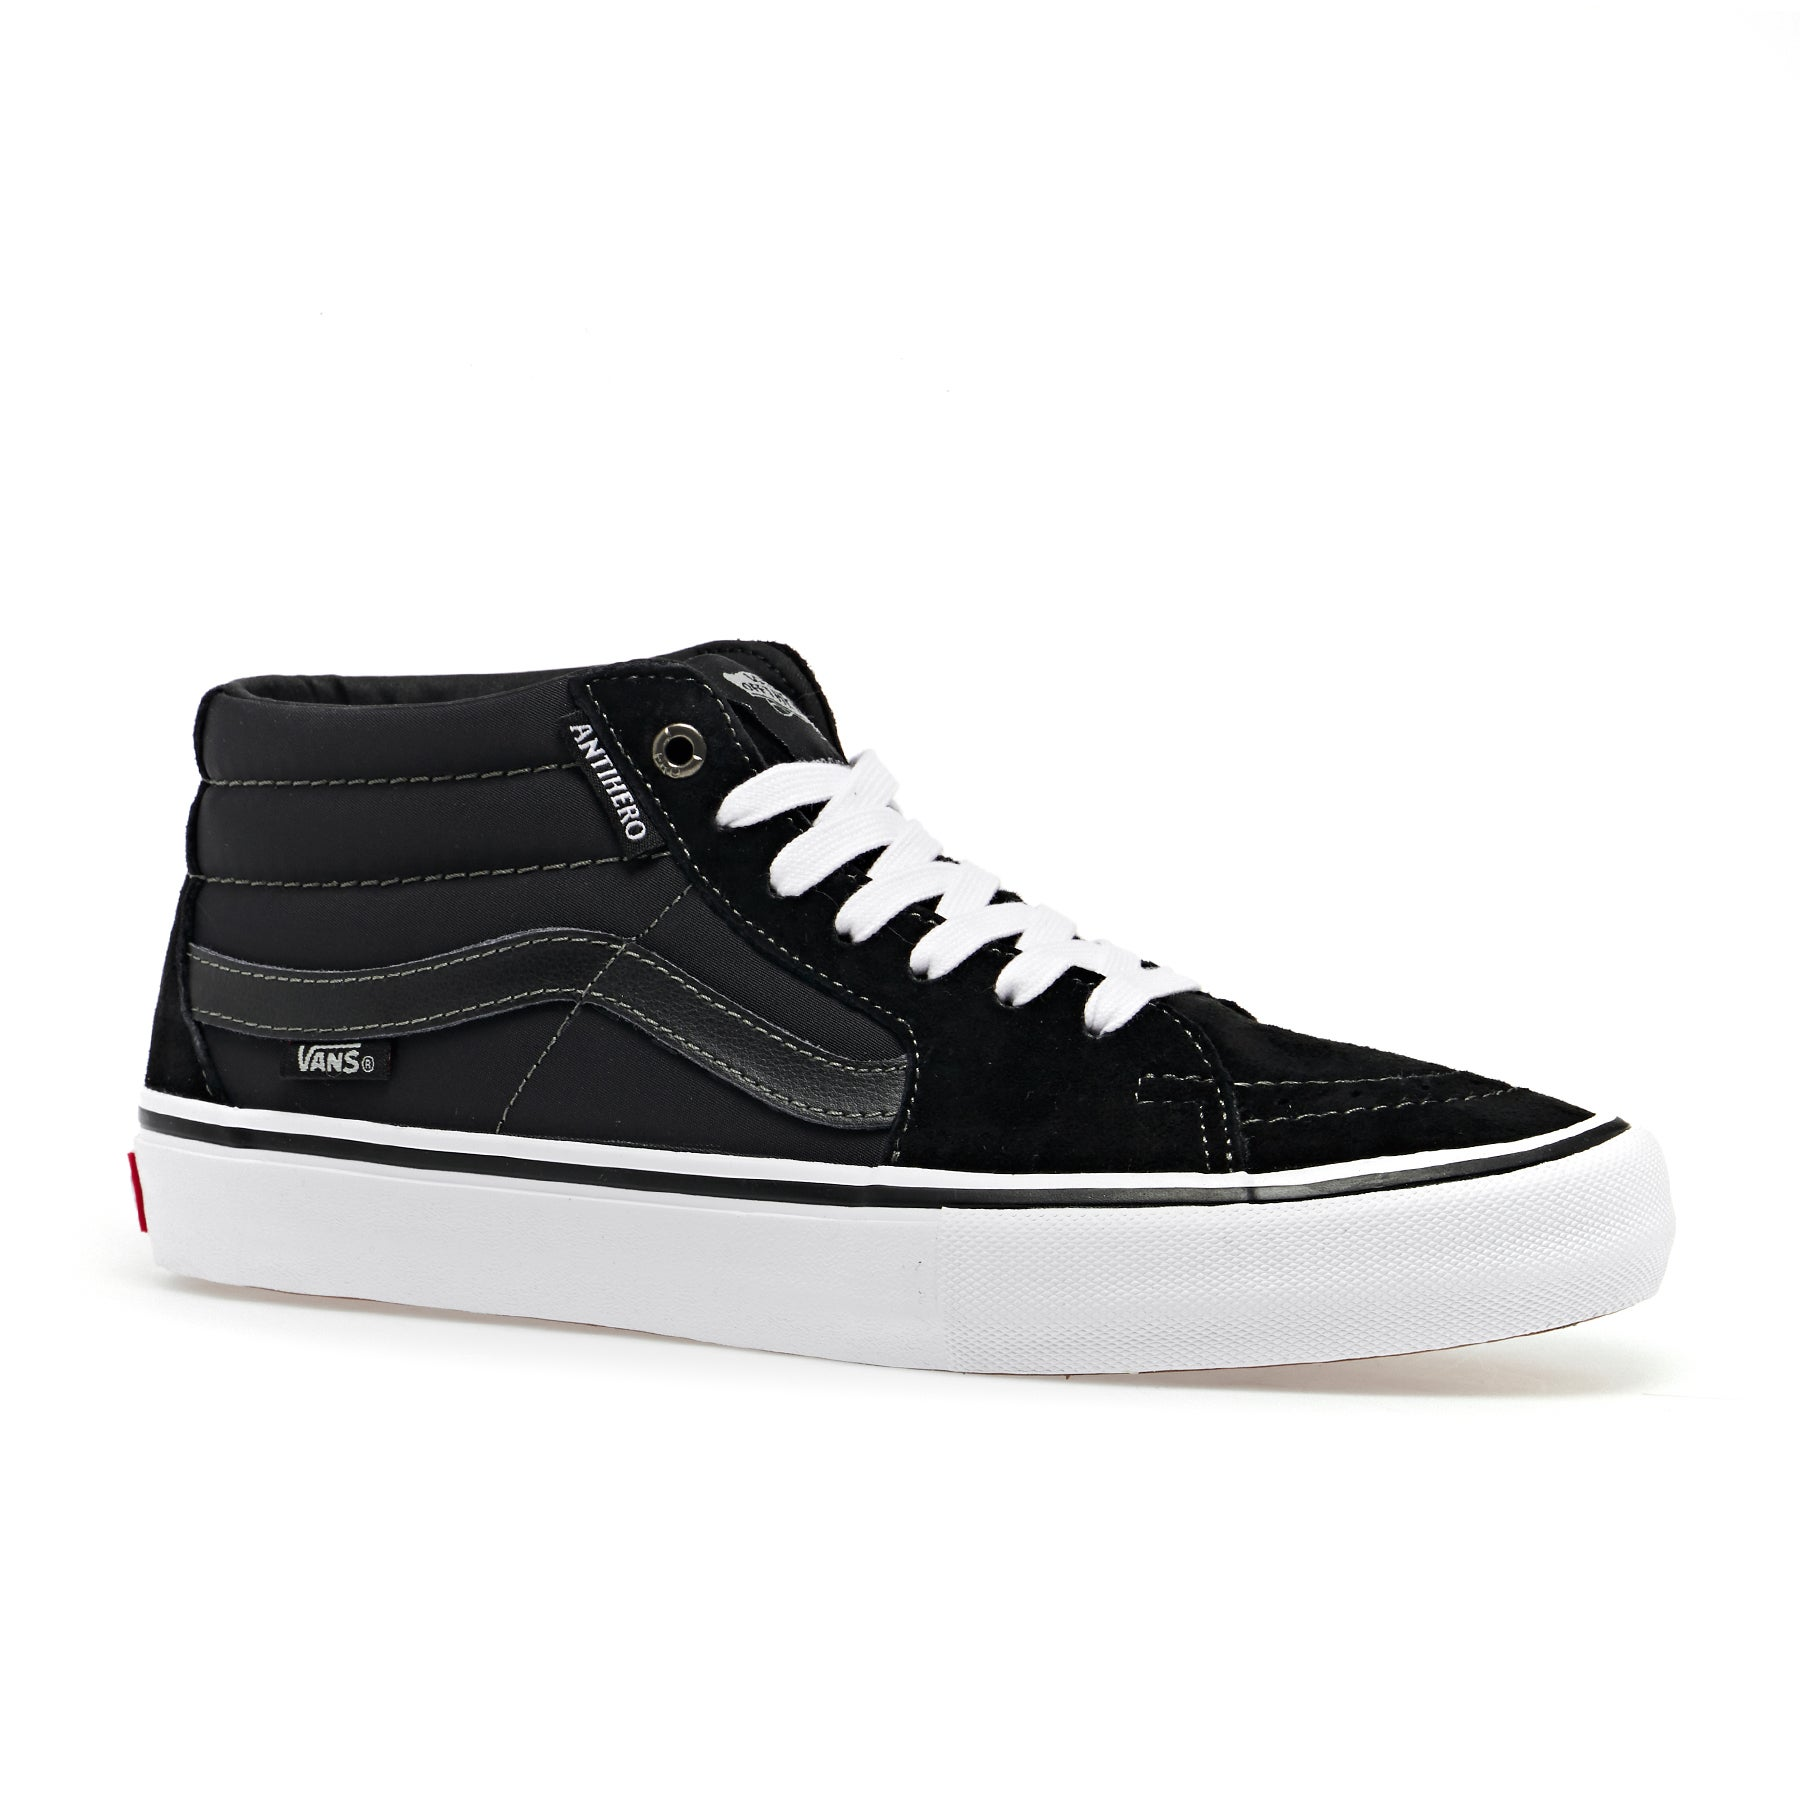 Vans Sk8 Mid Pro Shoes - Anti Hero Grosso Black